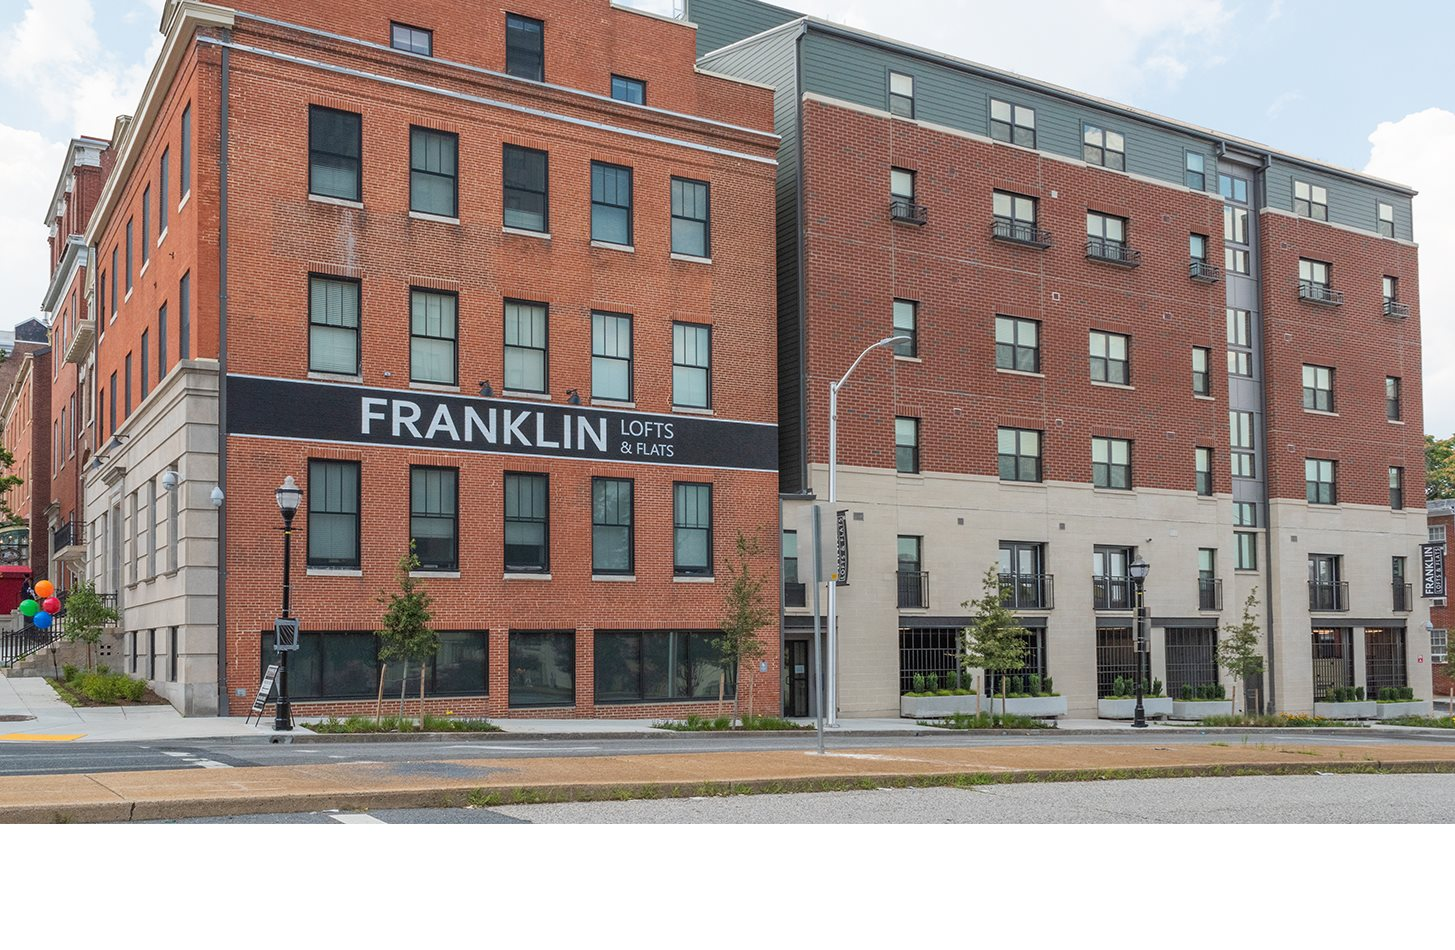 Franklin Lofts Amp Flats Affordable Apartments In